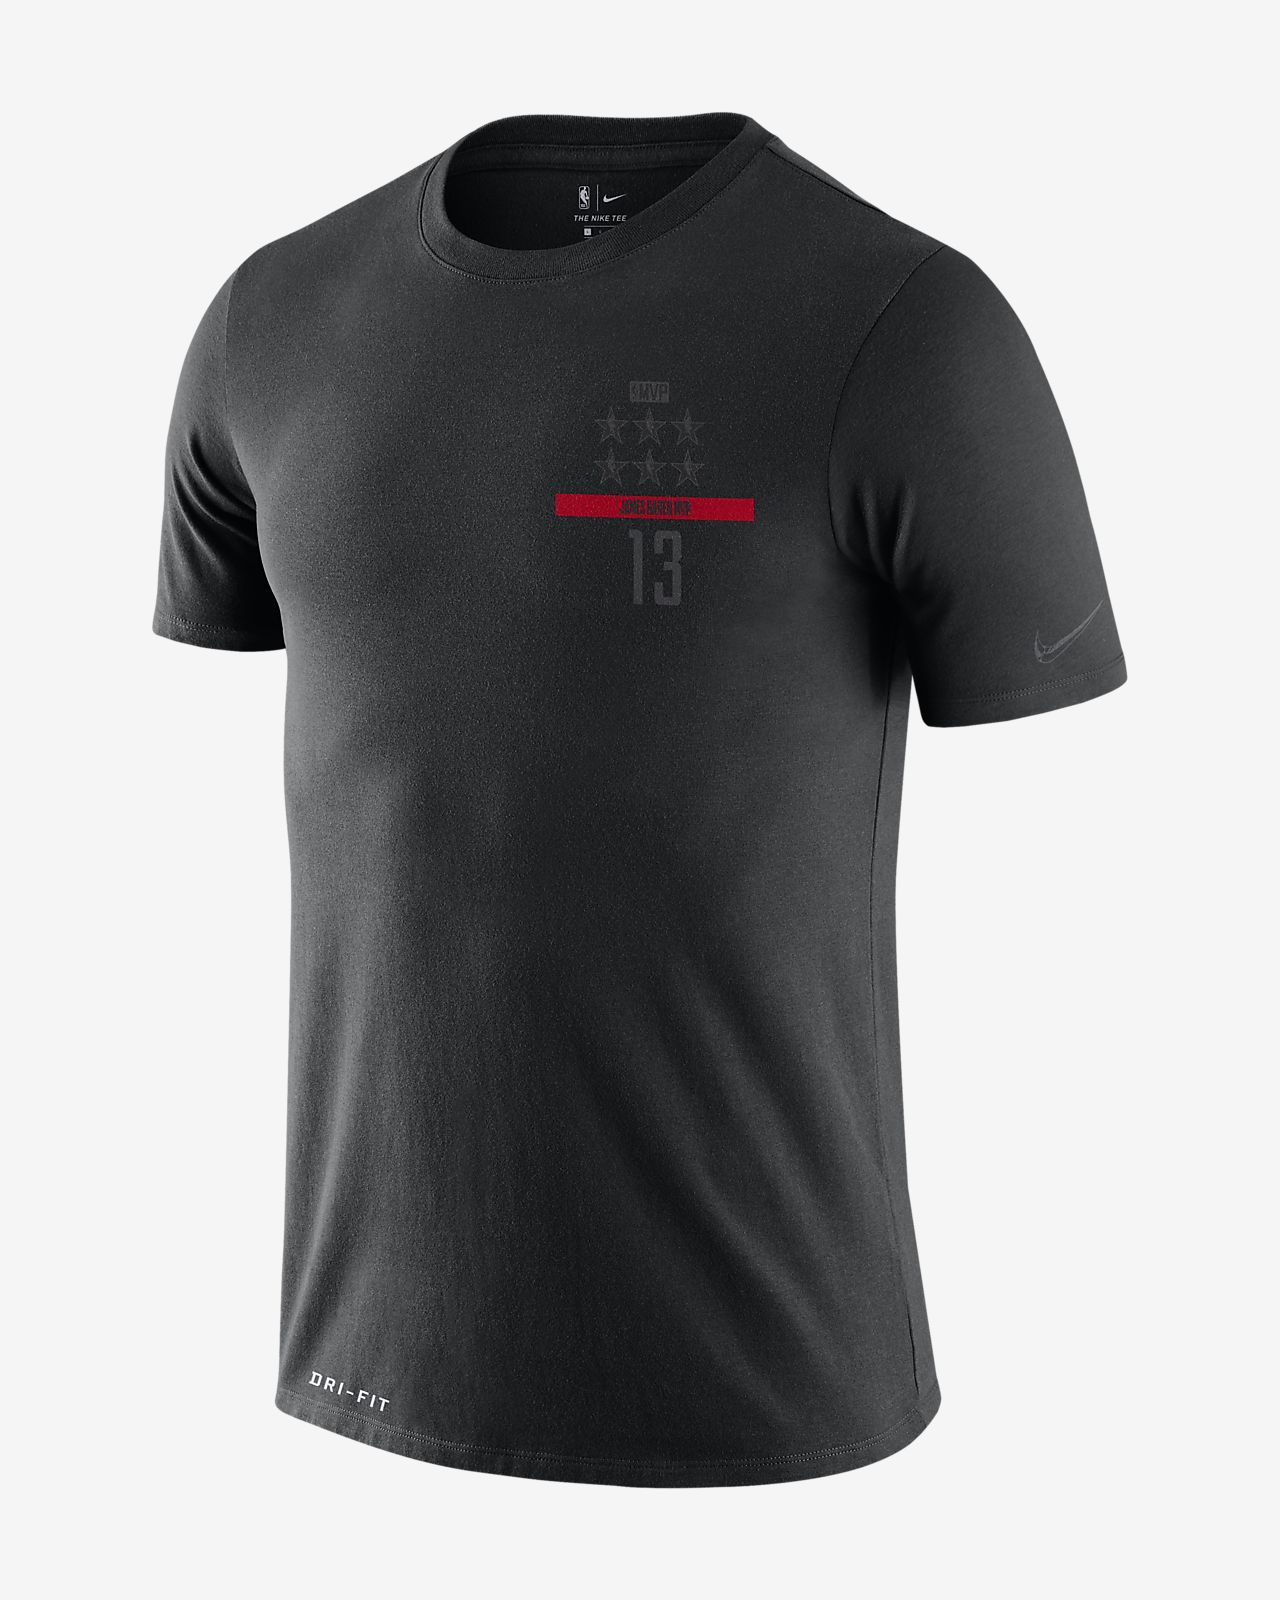 ebed7133a147 James Harden Nike Dri-FIT